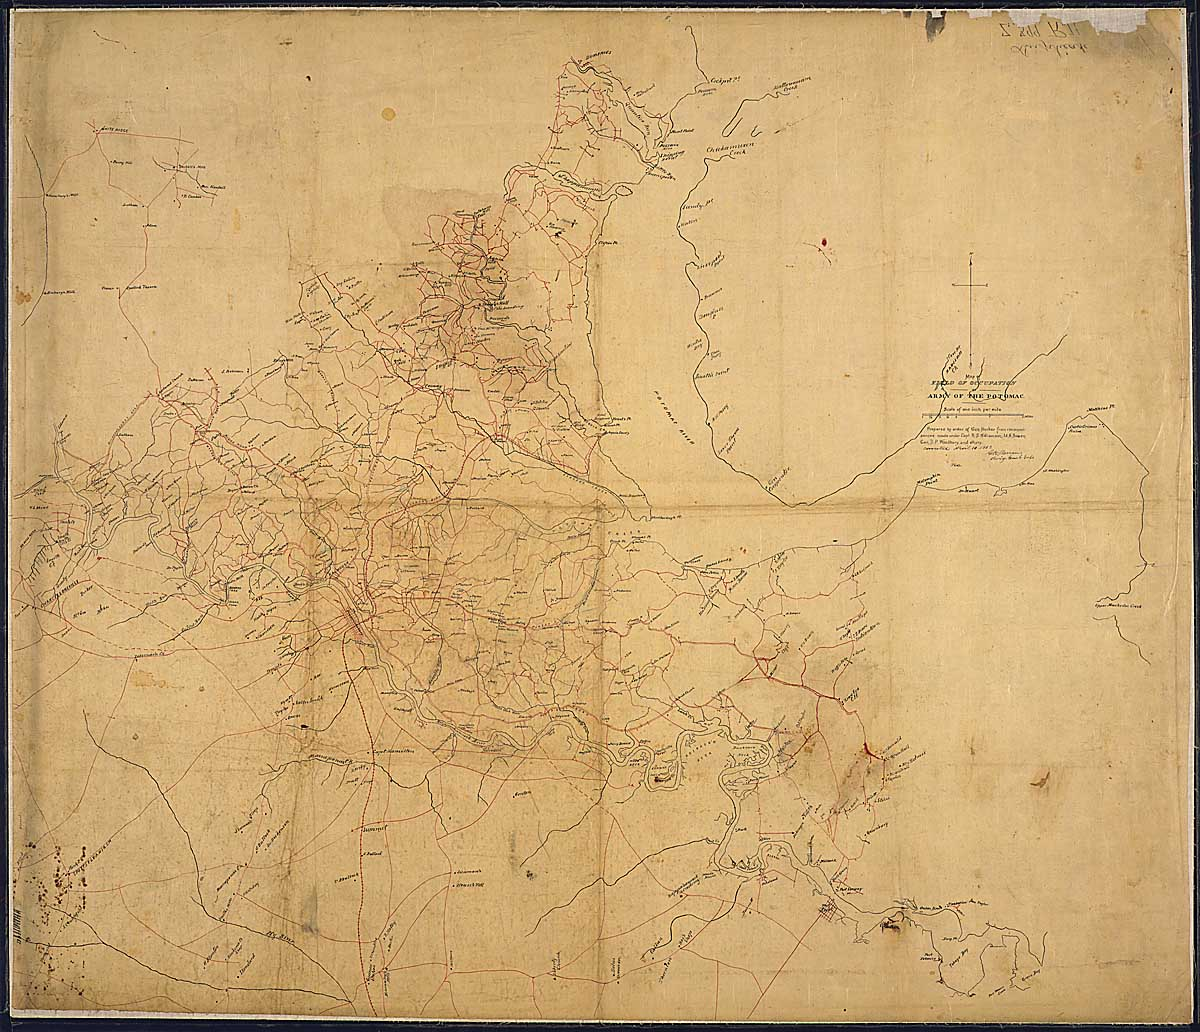 It's possible Dabney contributed details to this map, completed in the days before the Battle of Chancellorsville [Records of the Office of the Chief of Engineers, 77-CWMF-Z399(2)]